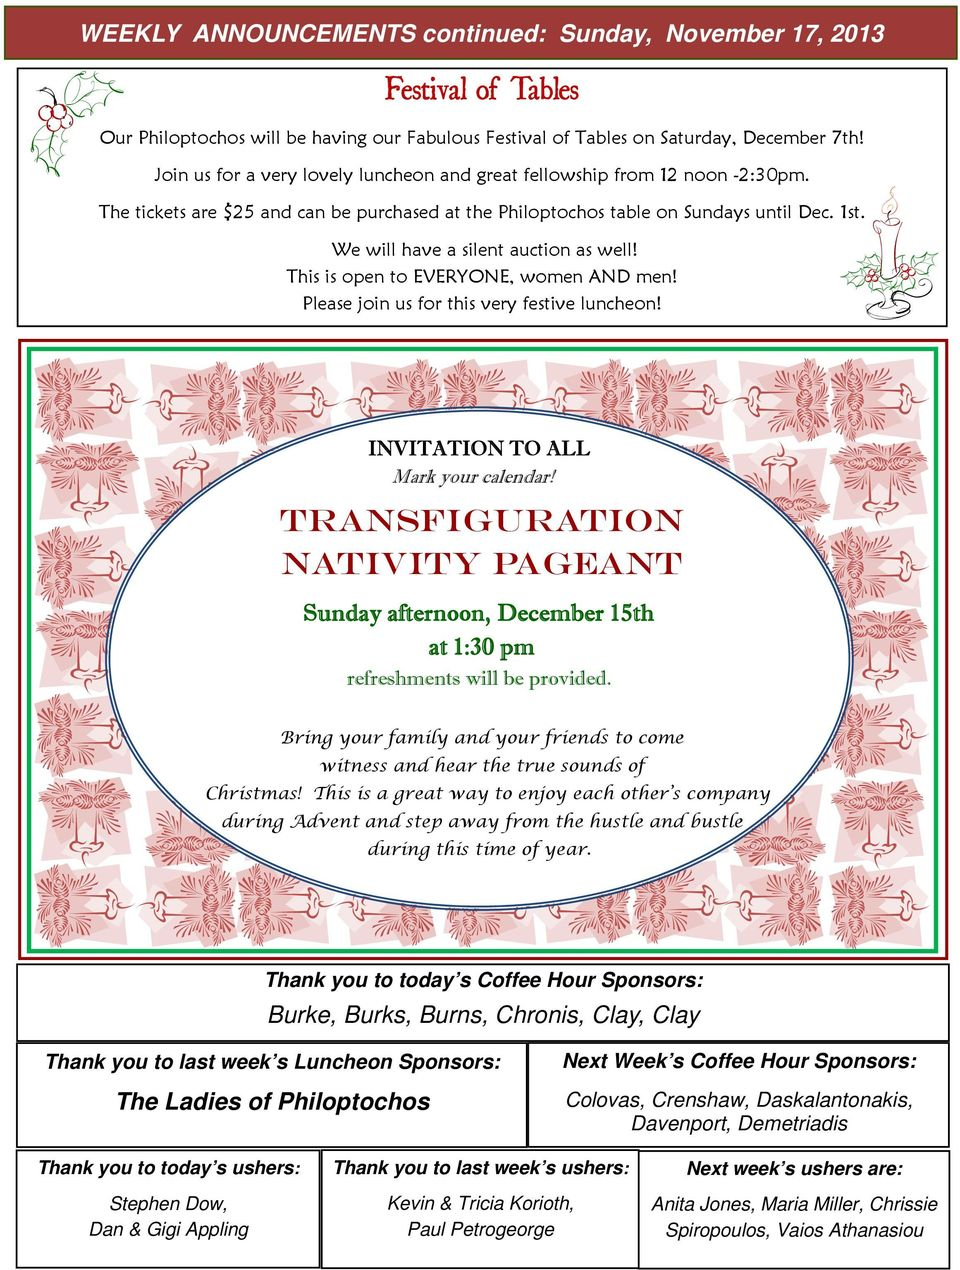 We will have a silent auction as well! This is open to EVERYONE, women AND men! Please join us for this very festive luncheon! INVITATION TO ALL Mark your calendar!